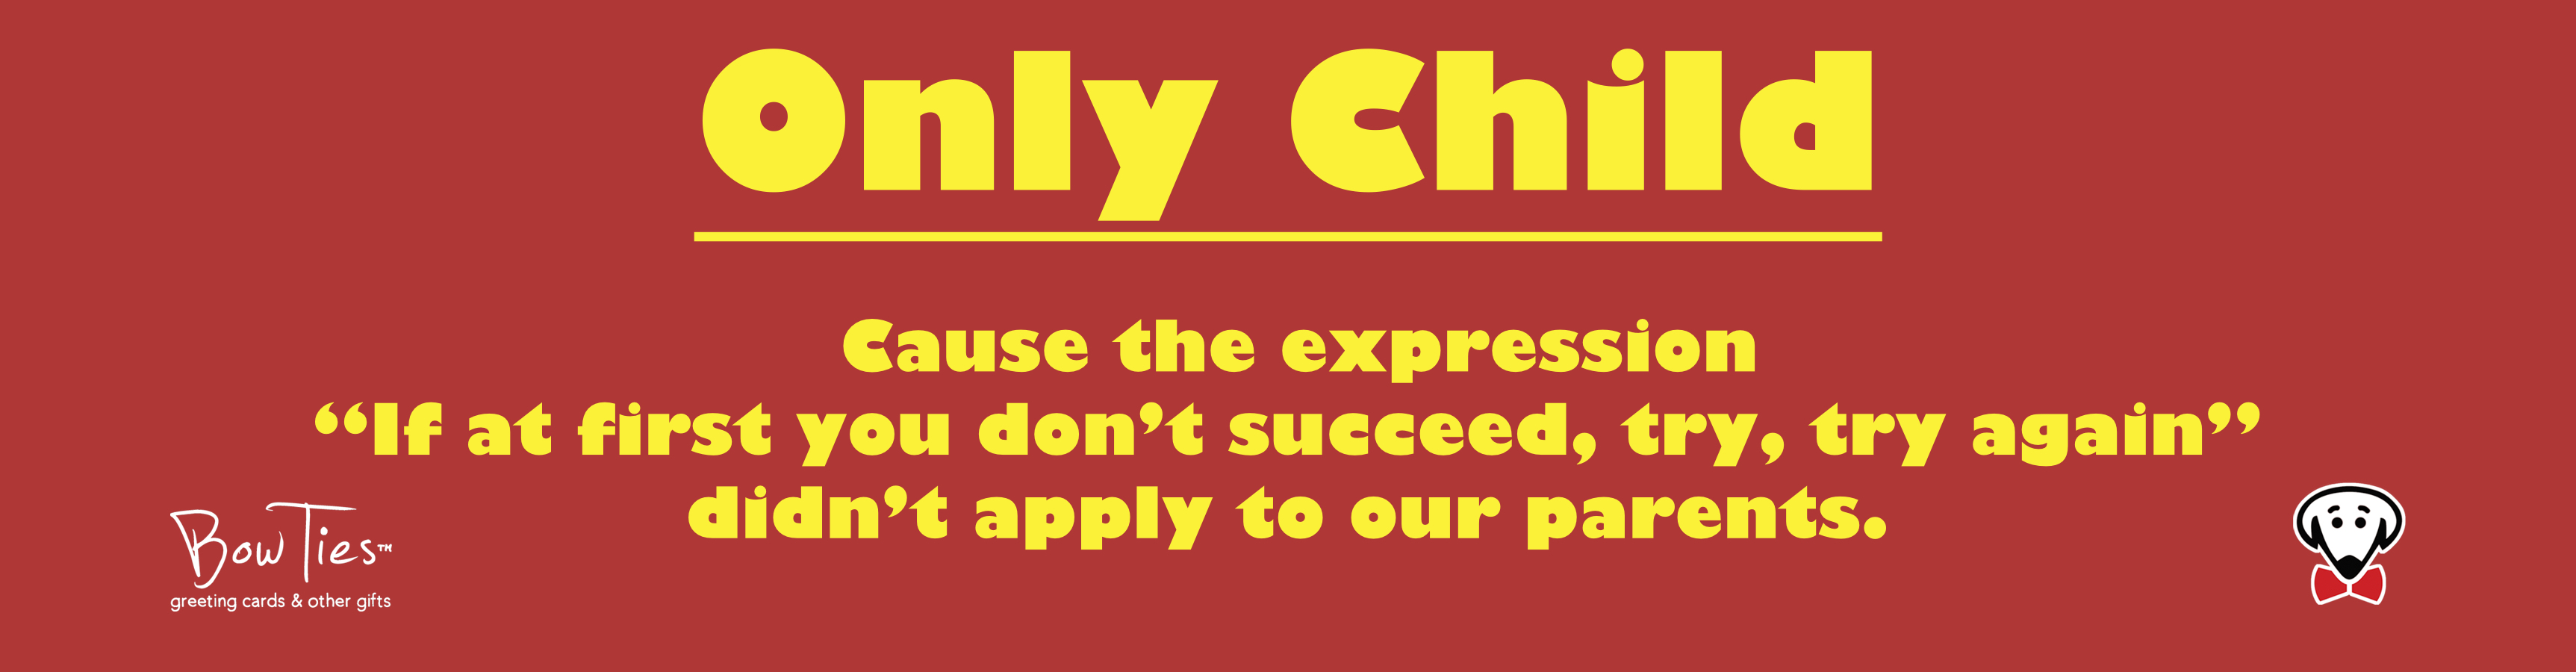 "Only Child. Cause the expression ""If at first you don't succeed, try, try again"" didn't apply to our parents. – sticker"